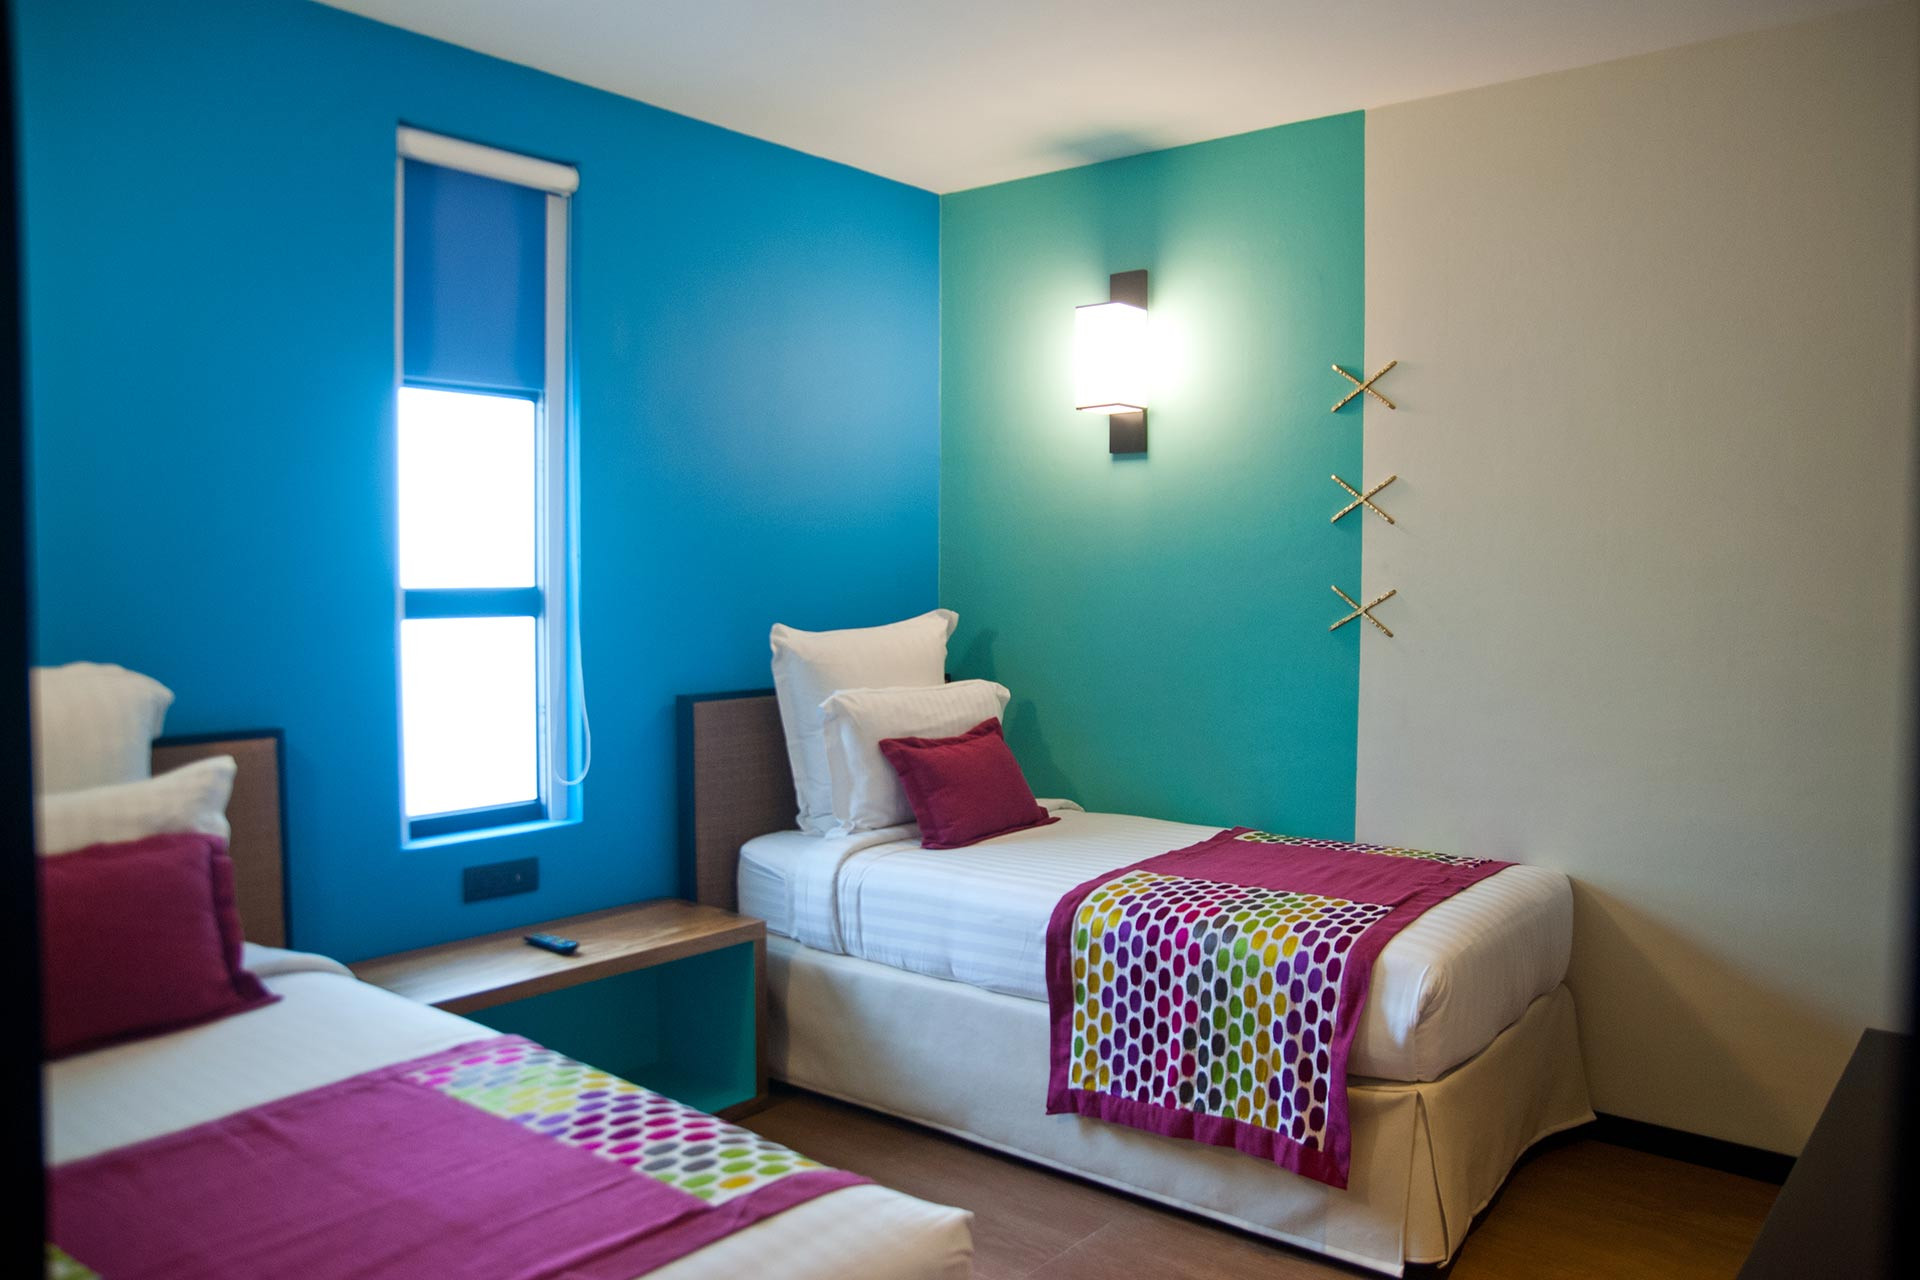 Best ideas about Hotels With Two Bedroom Suites . Save or Pin Best Hotels With Two Bedroom Family Suites Now.